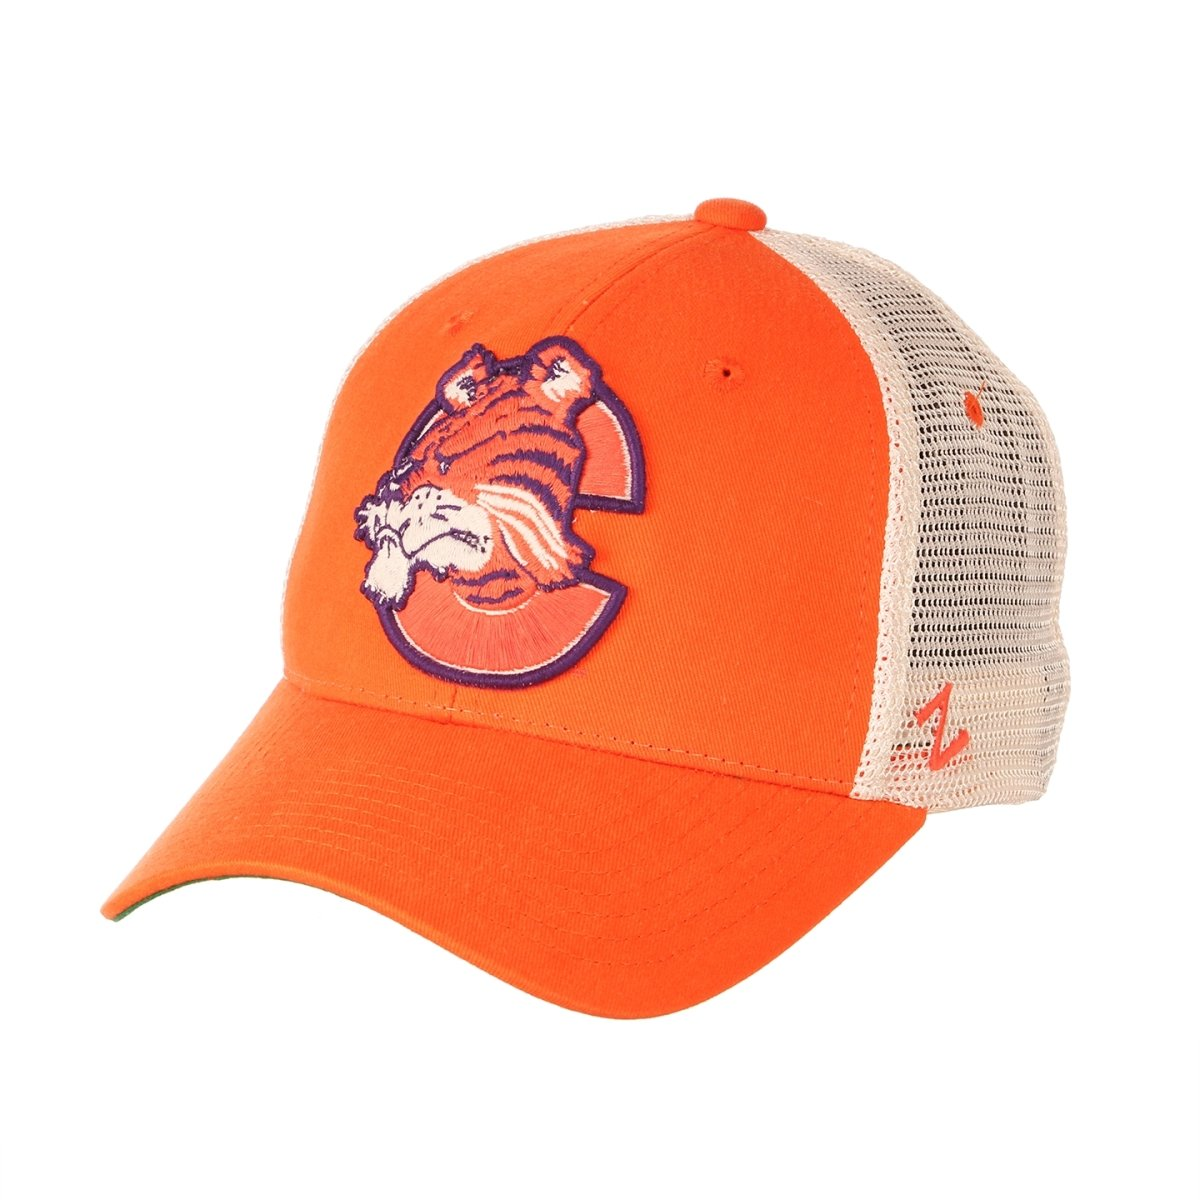 Clemson Tigers Reload Vault With Tiger Snapback Trucker Cap - Mr. Knickerbocker